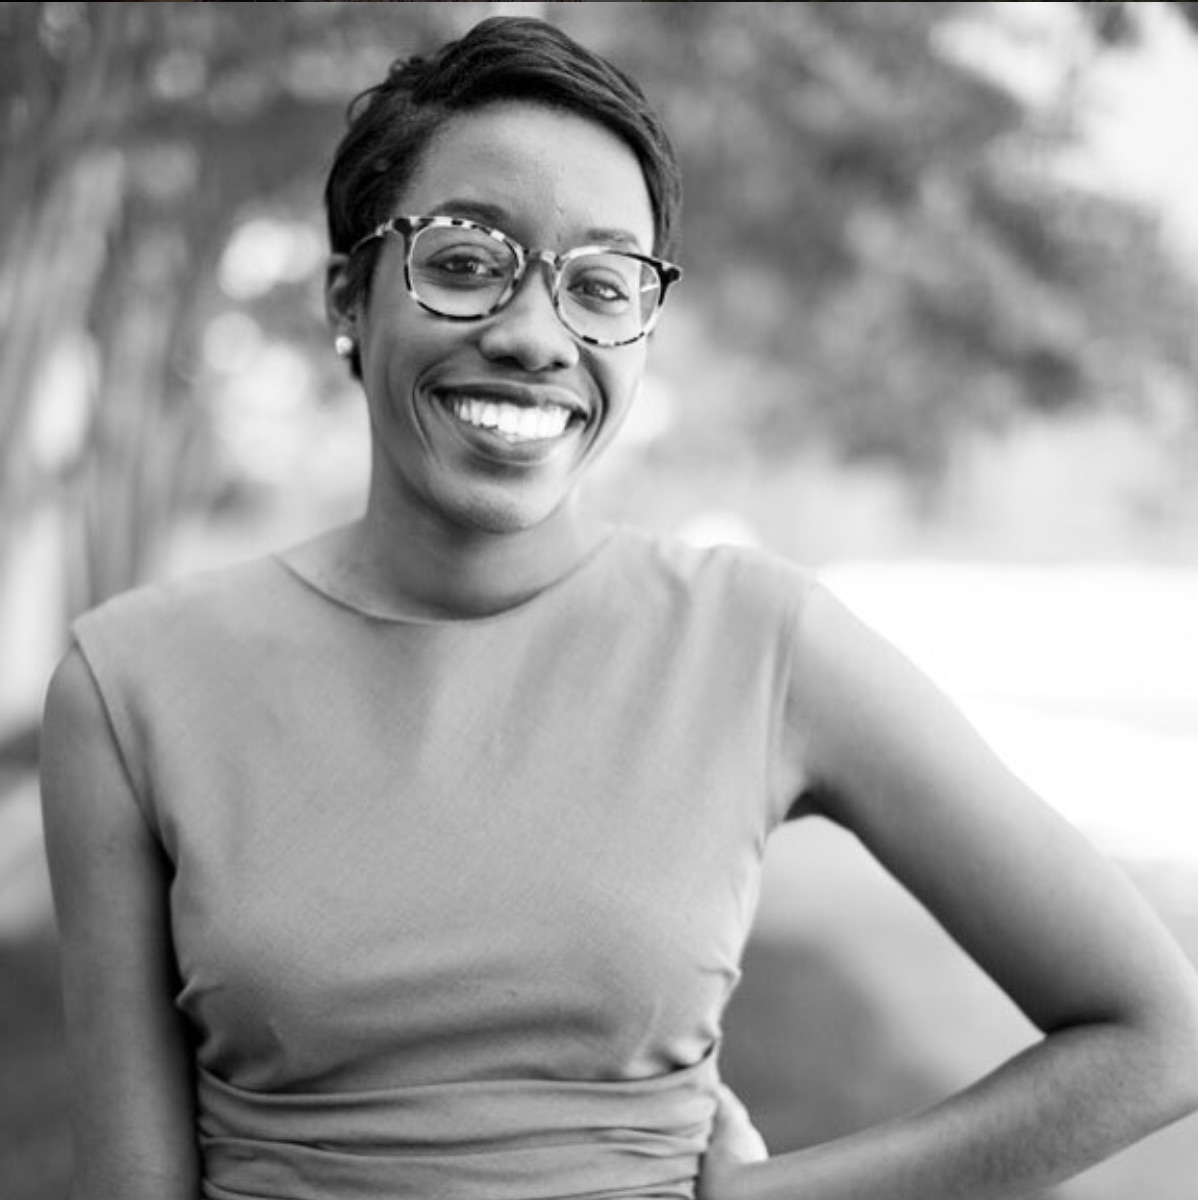 Democratic Congresswoman Lauren Underwood of Illinois 14th district, elected in 2018.